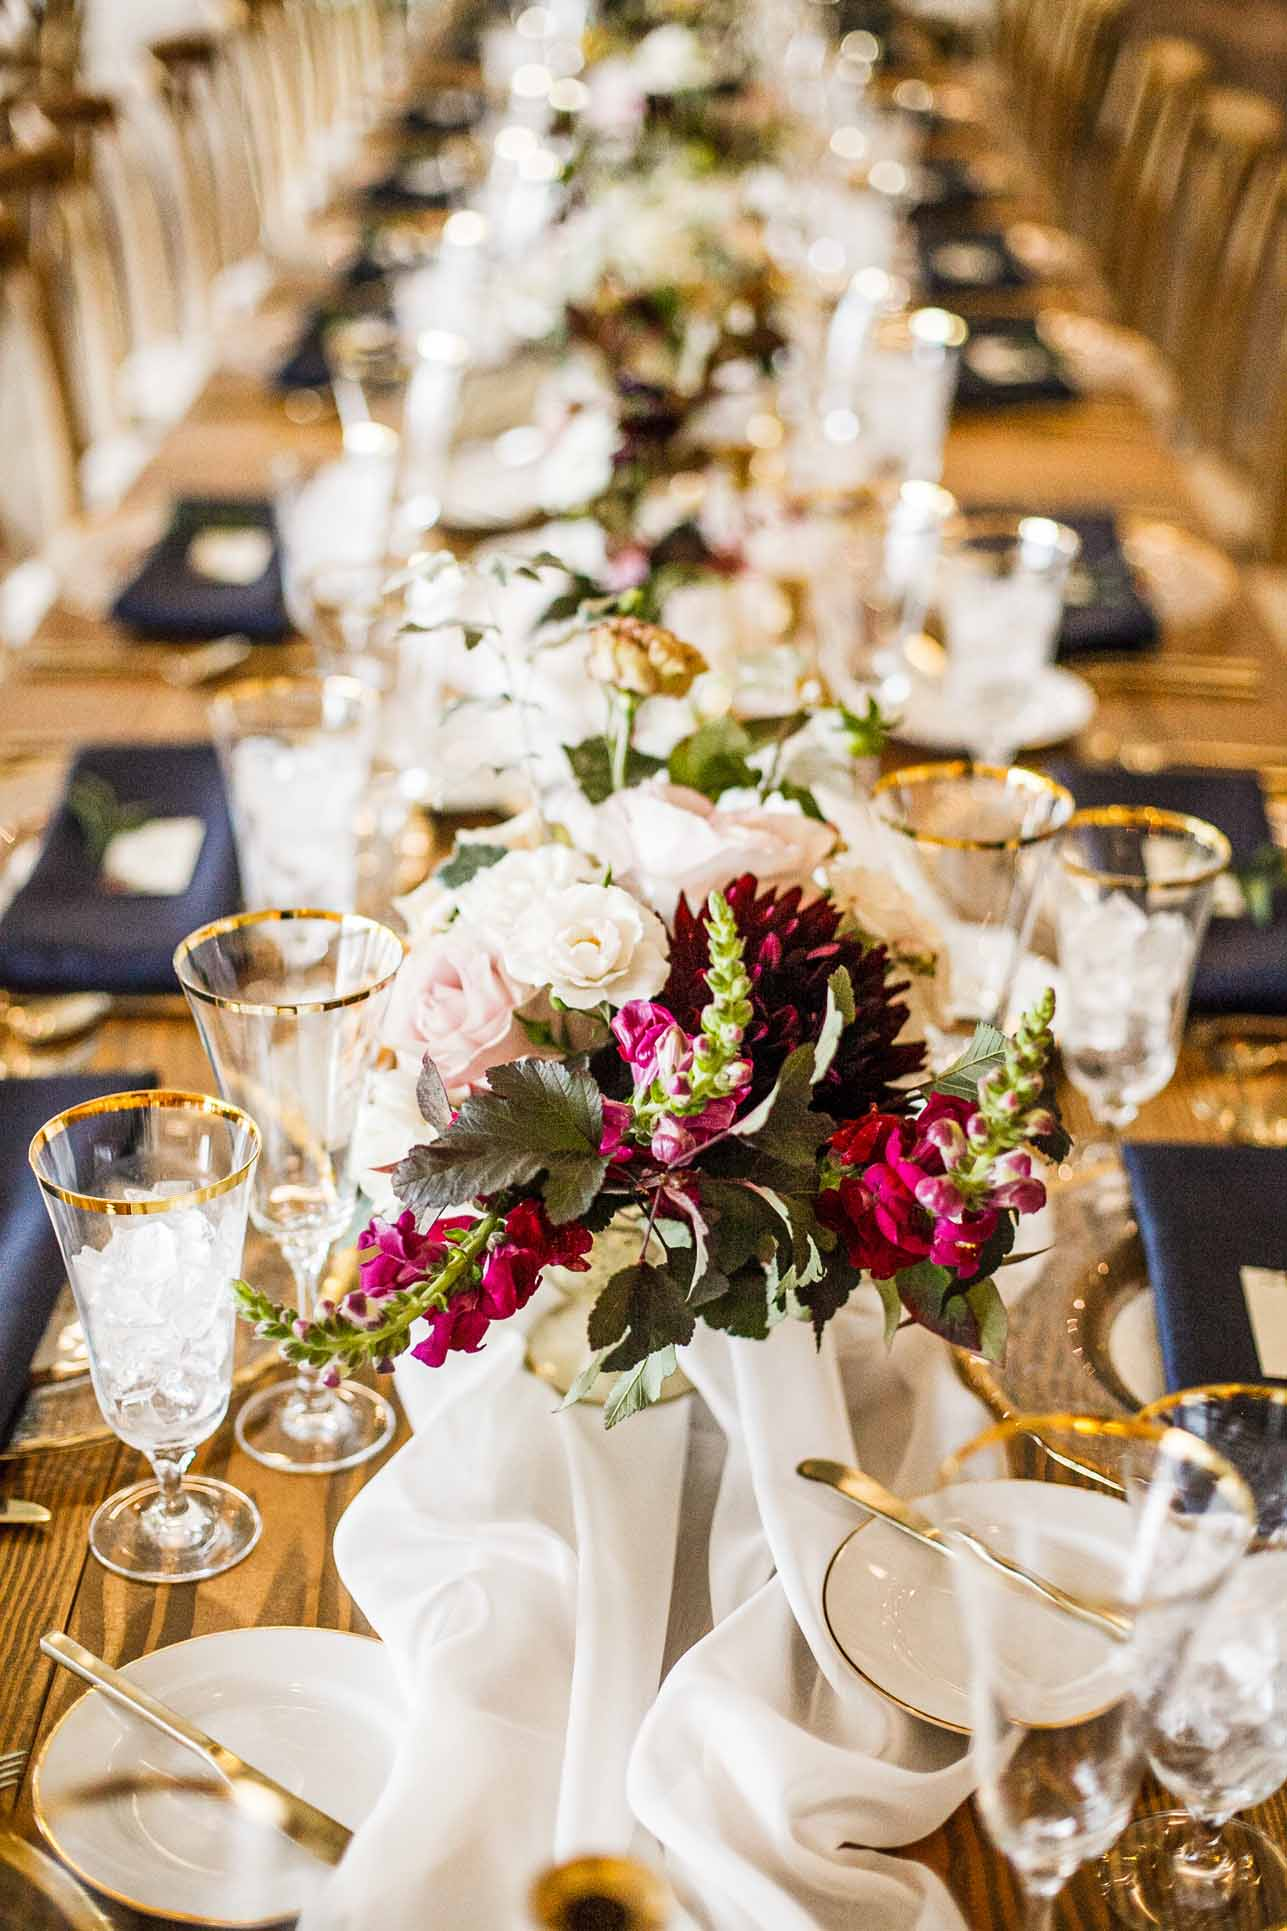 A long table decorated with pretty fall flowers